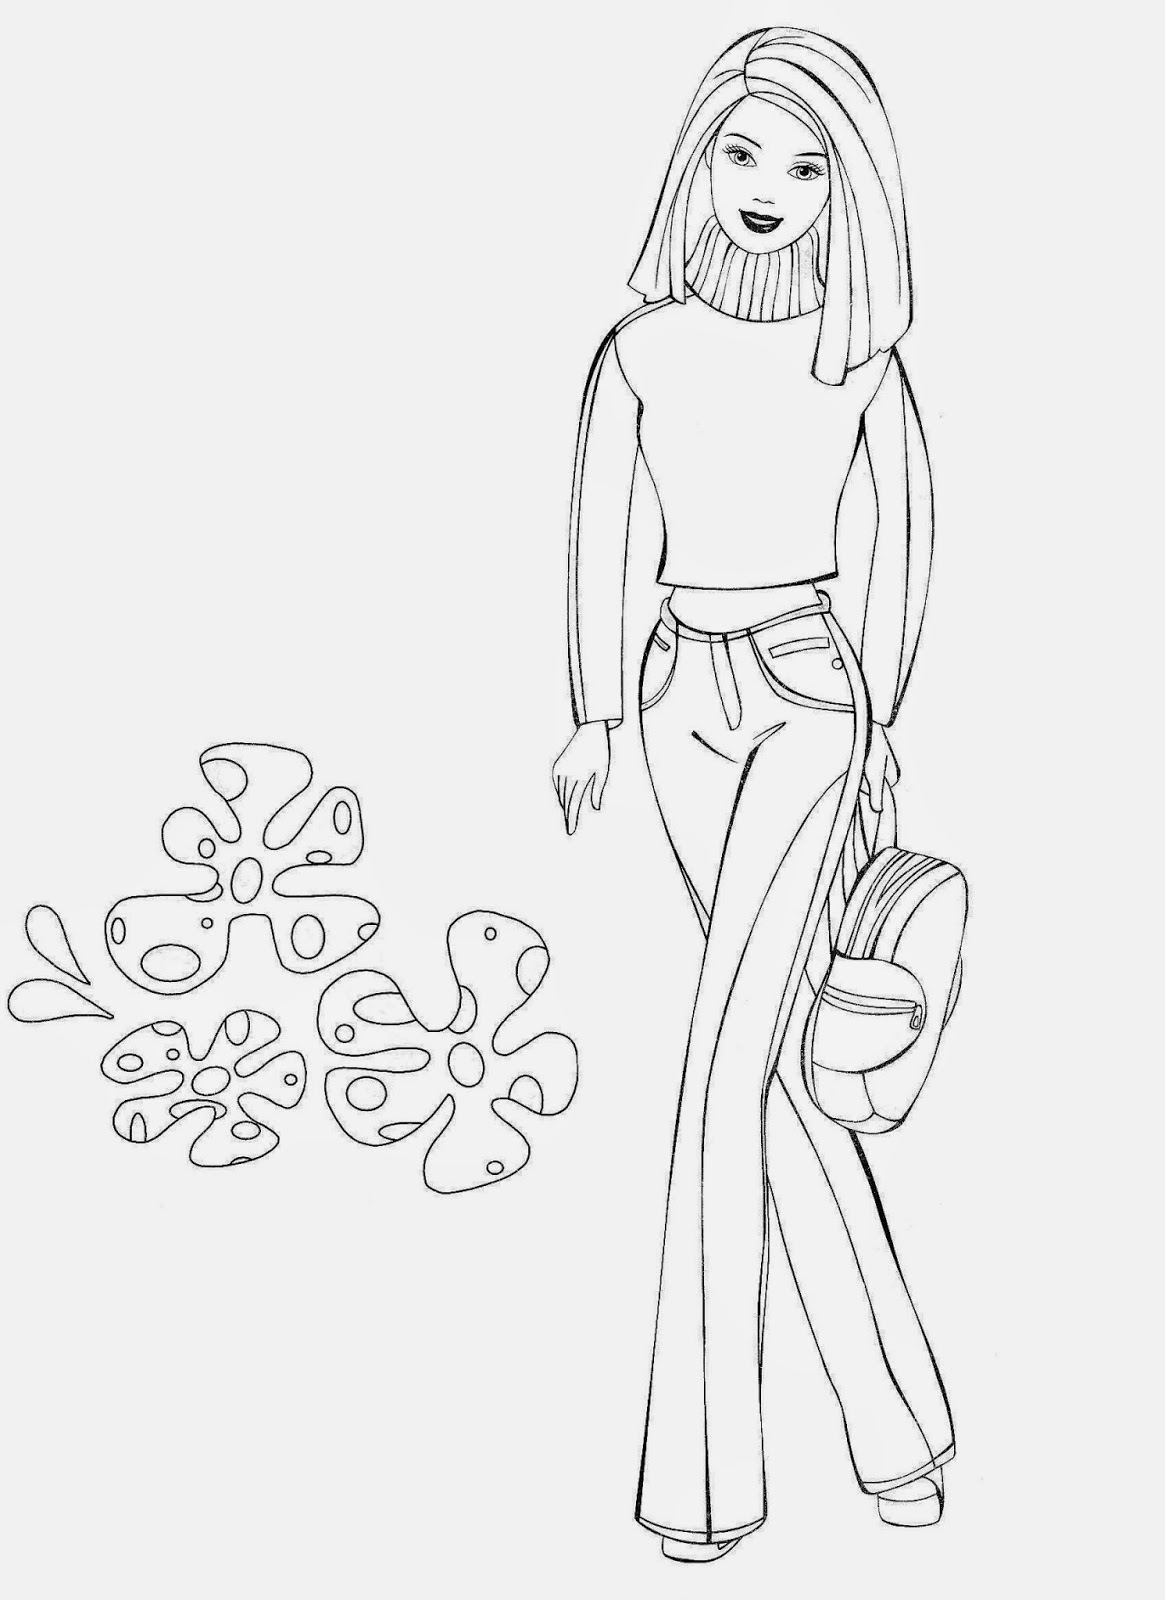 coloring page barbie coloring pages barbie free printable coloring pages barbie page coloring